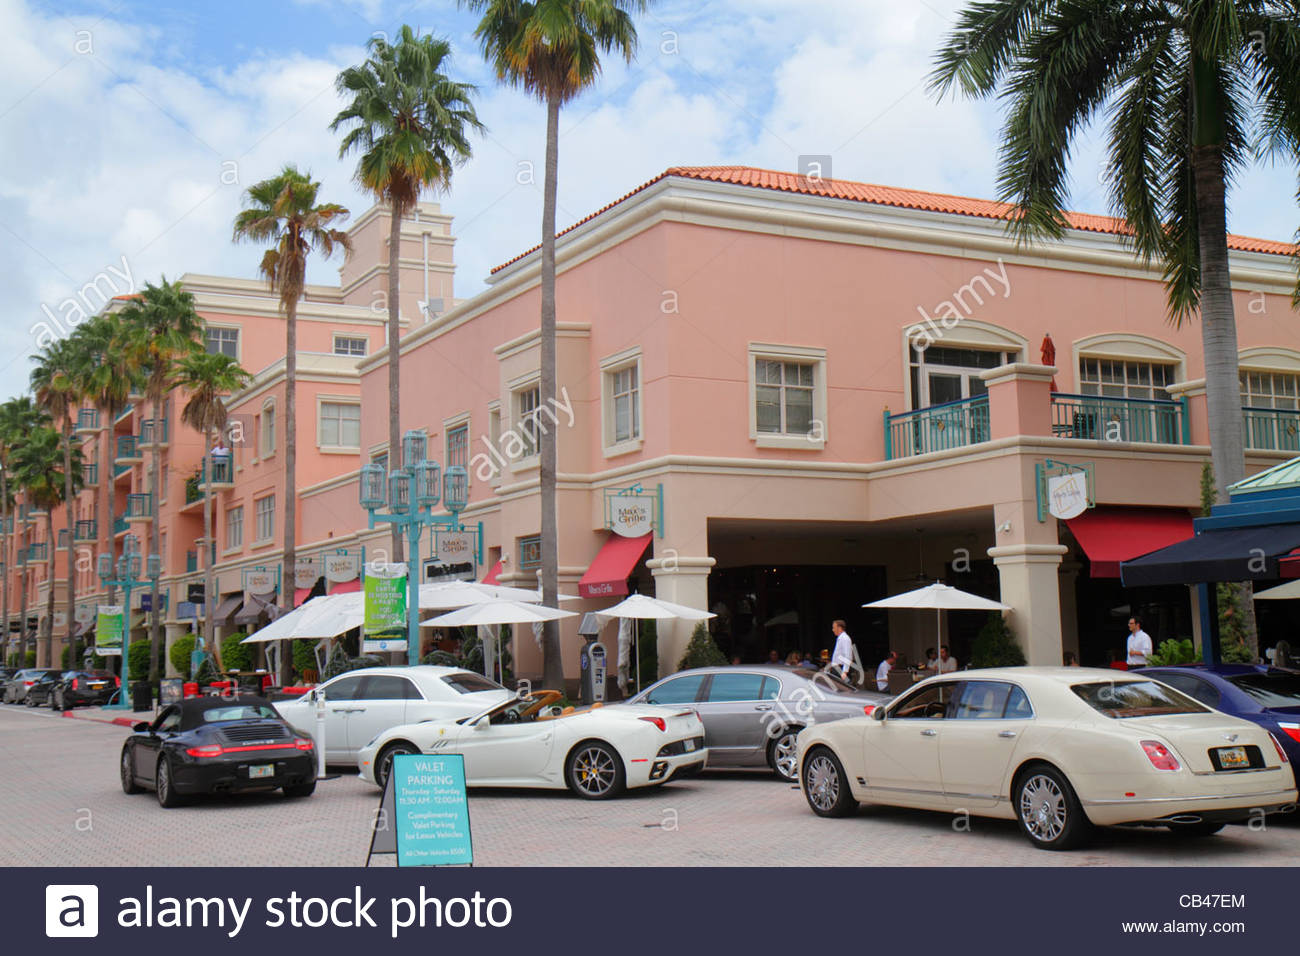 The City of Boca Raton is known for its dining and shopping. The City has restaurants of all types and sizes - from upscale dining experiences to casual eateries. Boca has a variety of shops from national department stores to trendy boutiques and specialty shops.